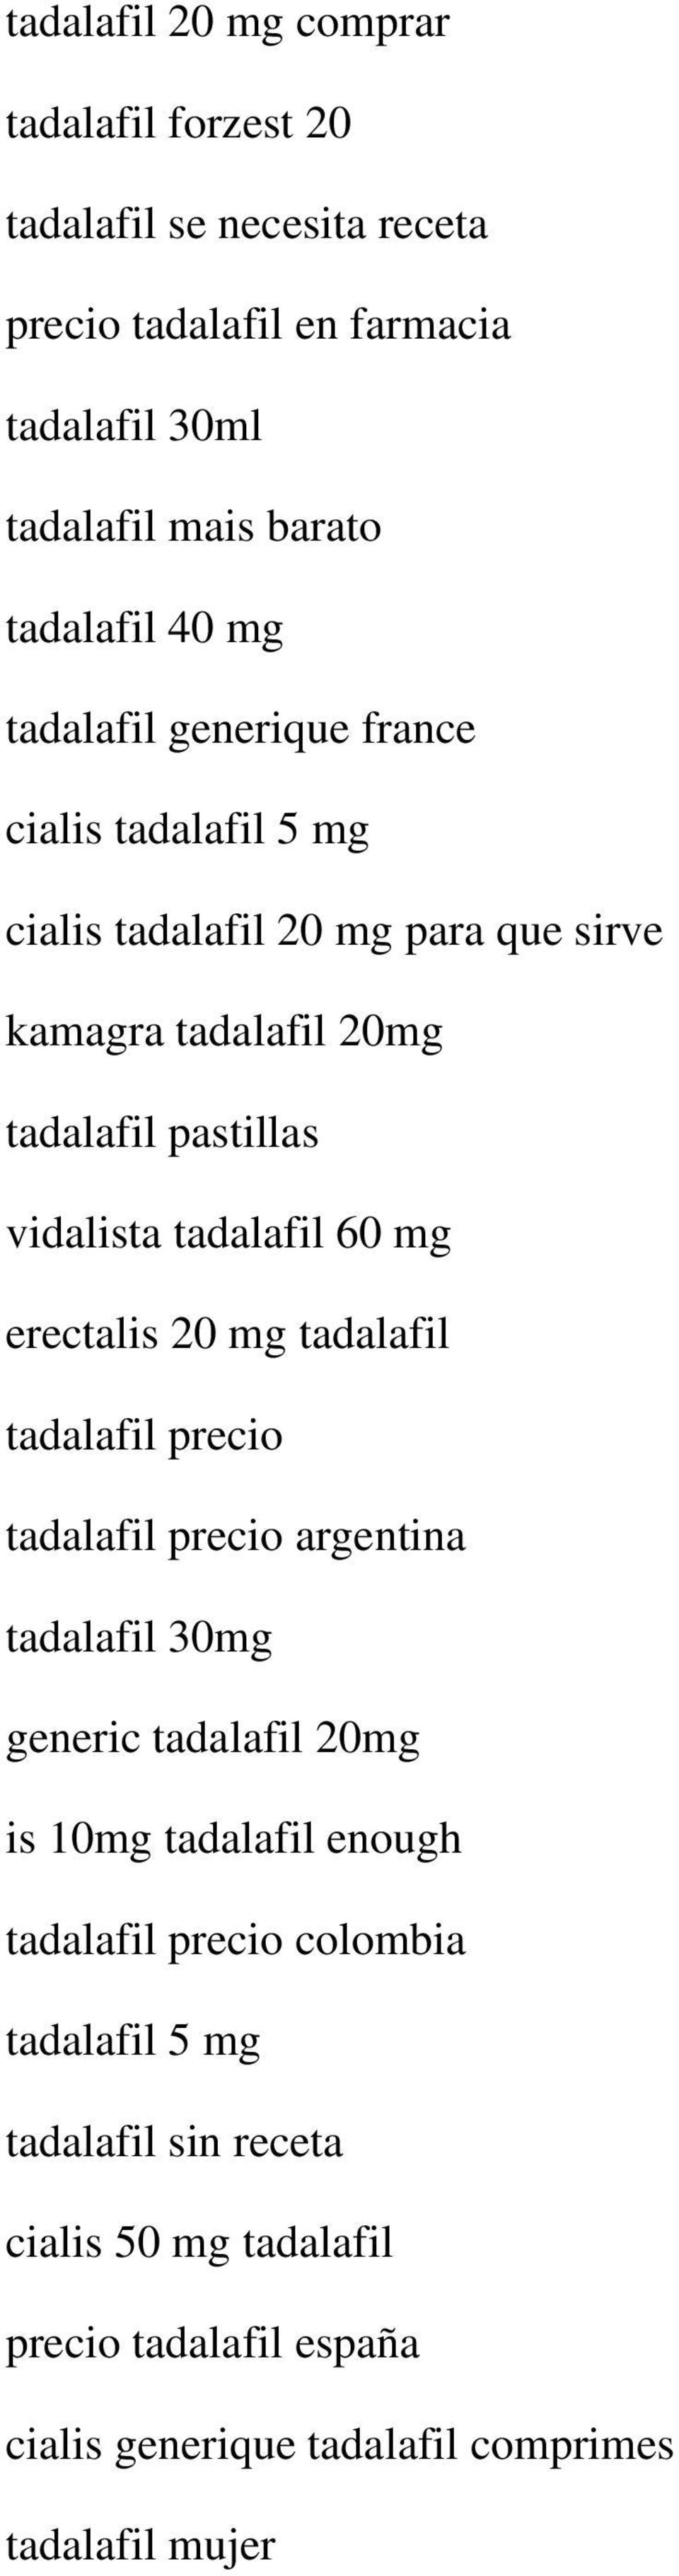 tadalafil 60 mg erectalis 20 mg tadalafil tadalafil precio tadalafil precio argentina tadalafil 30mg generic tadalafil 20mg is 10mg tadalafil enough